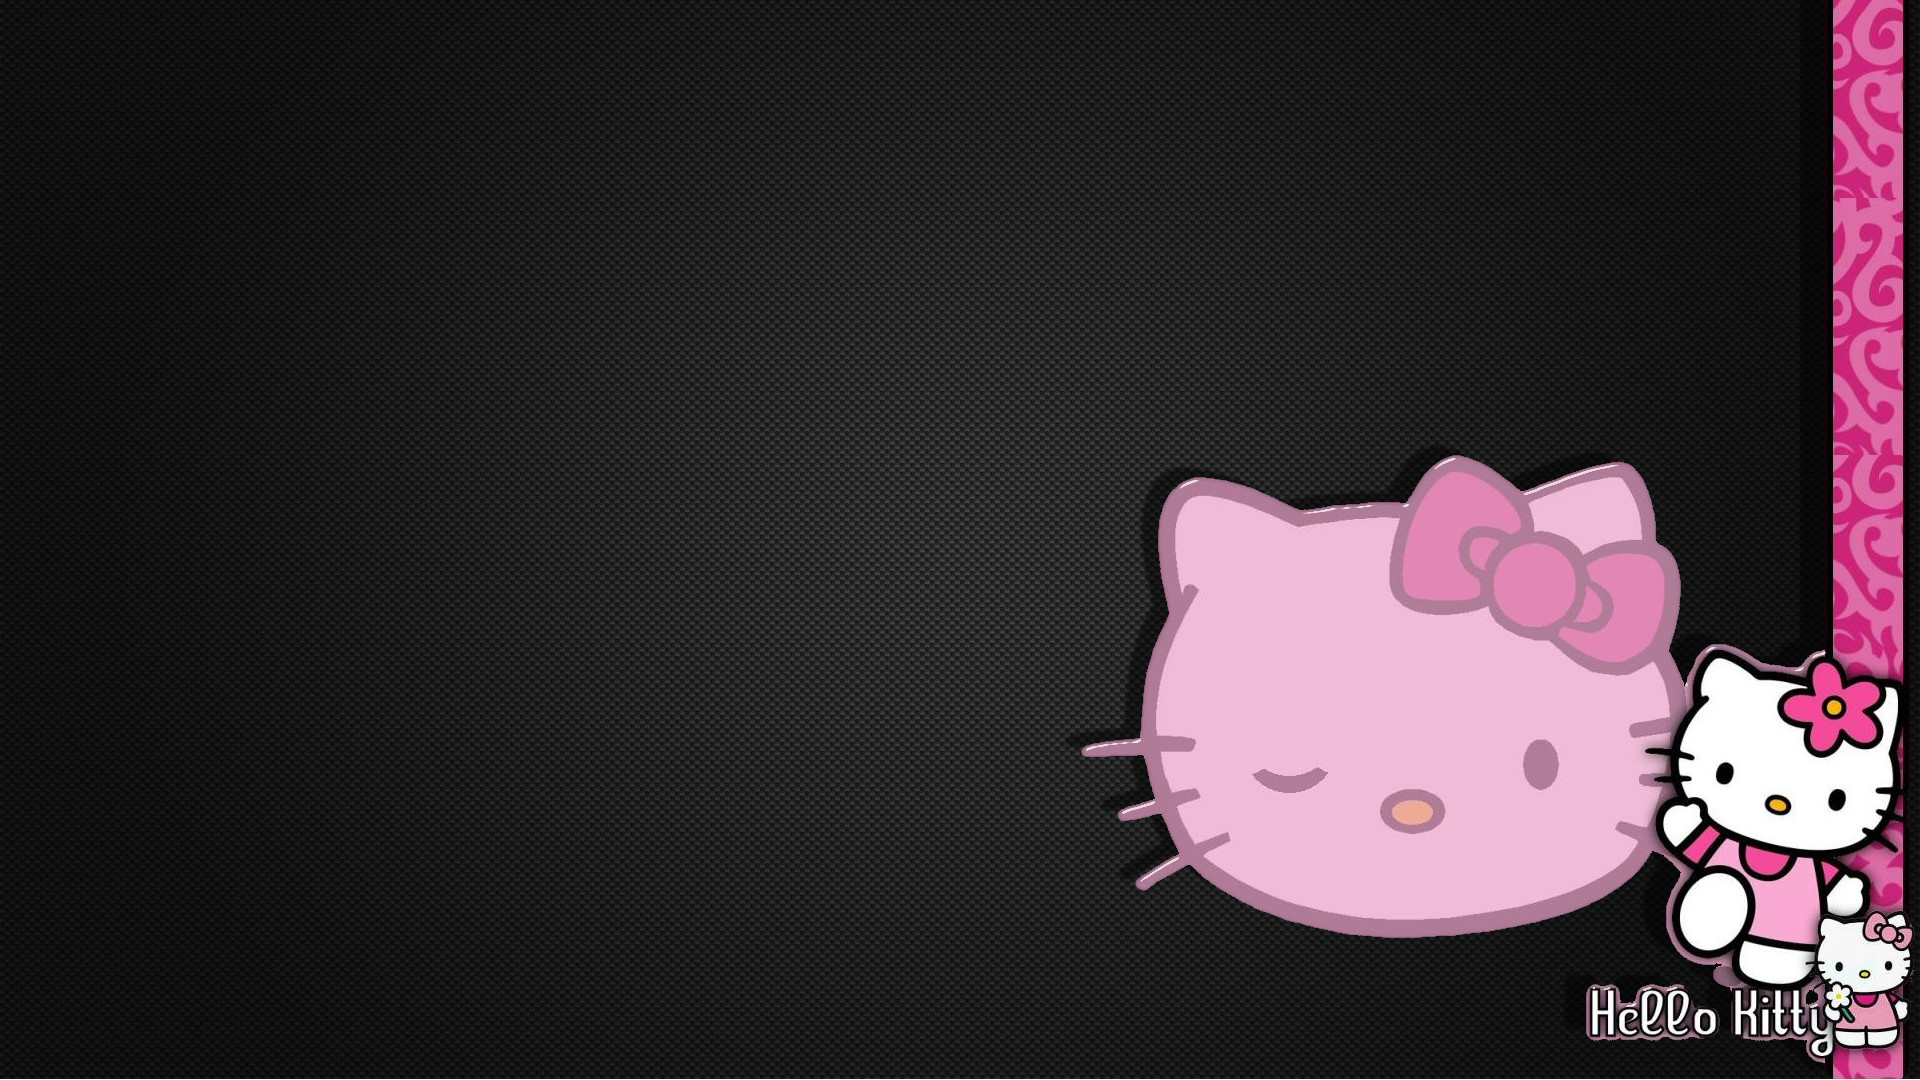 Hello Kitty Desktop Background Wallpapers 61 images 1920x1080